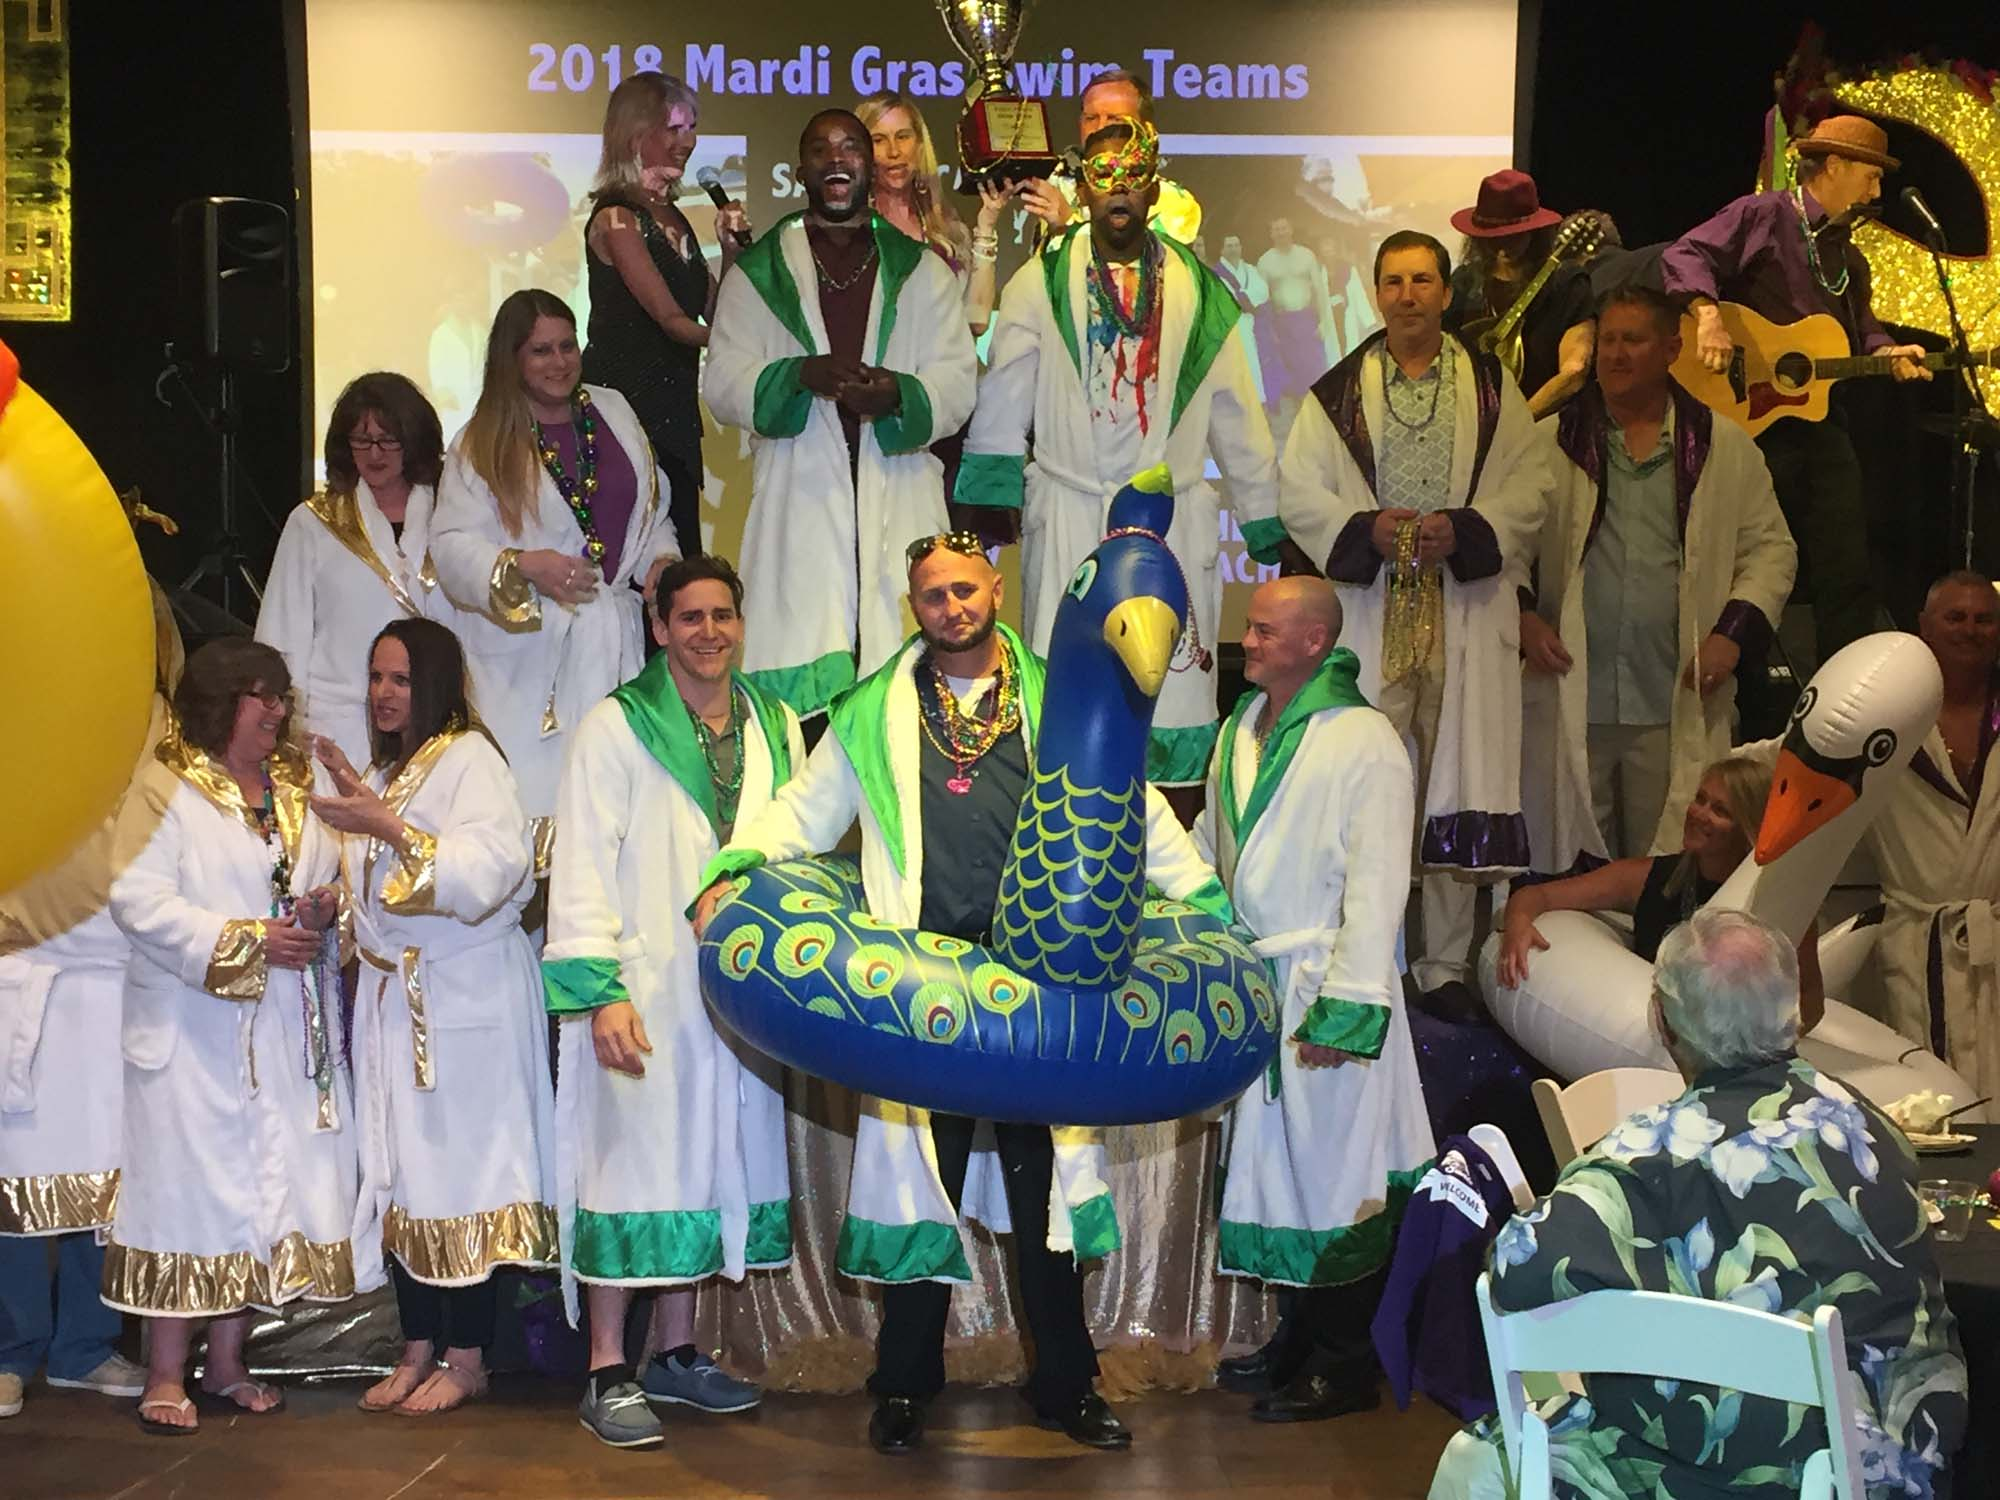 sanibel chr mardi gras 2018 sundial wins swim